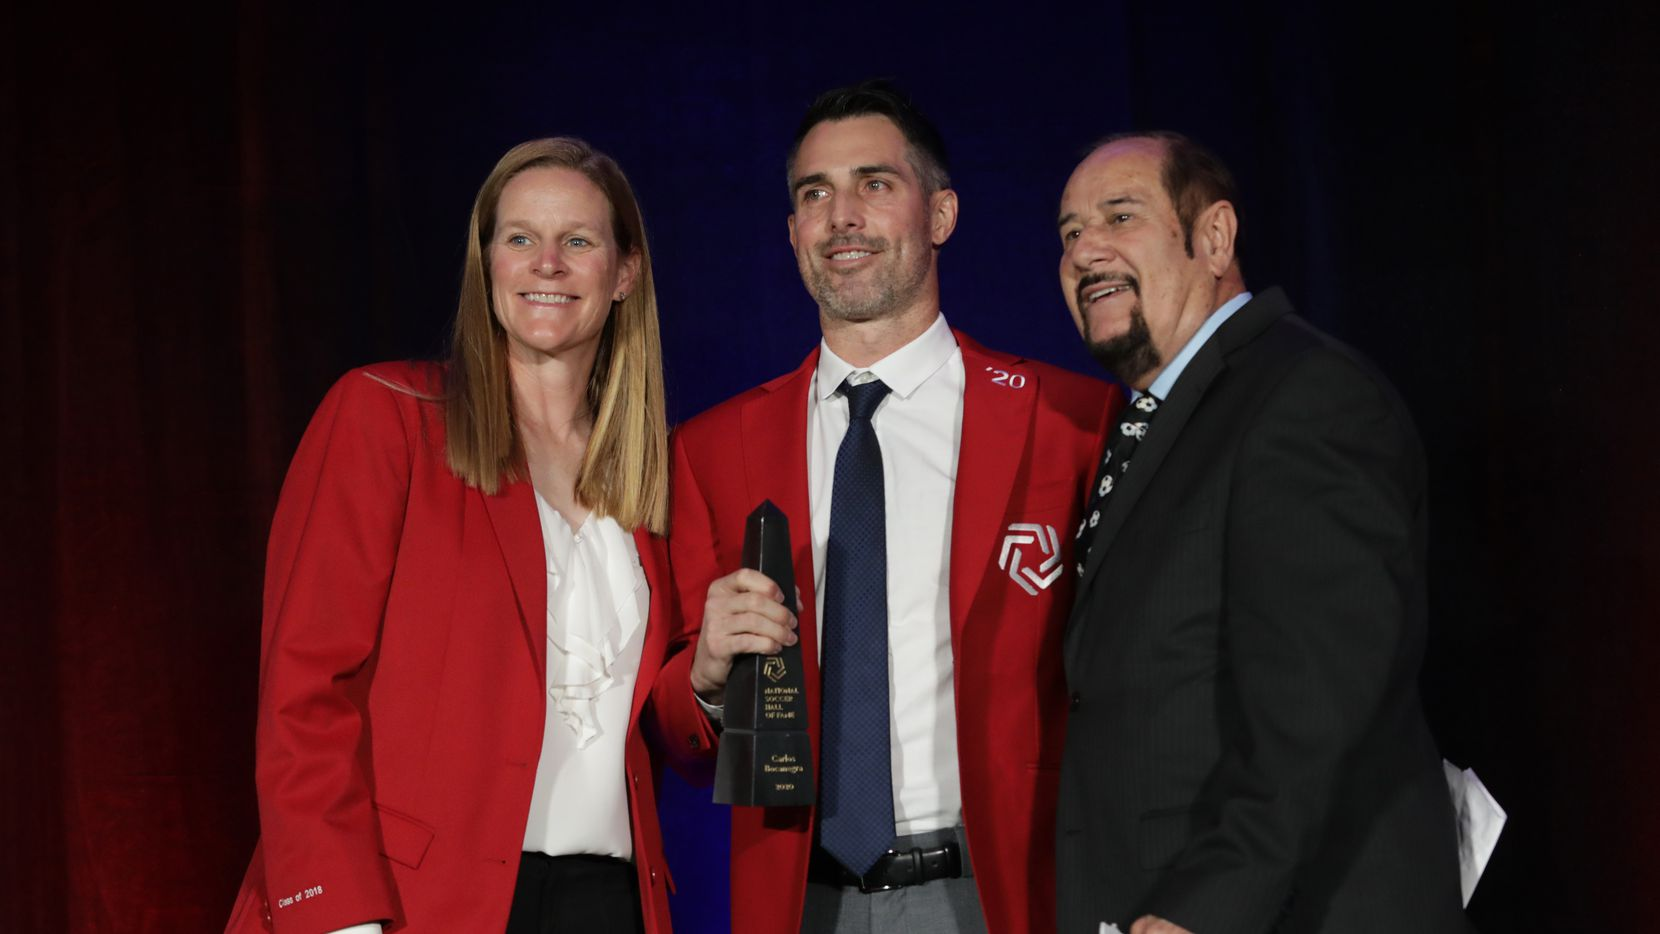 Cindy Parlow Cone, left, Carlos Bocanegra, and Manuel Bocanegra pose during the National Soccer Hall of Fame Induction ceremony at The Soccer Hall of Fame in Frsico, TX, on Oct. 2, 2021.